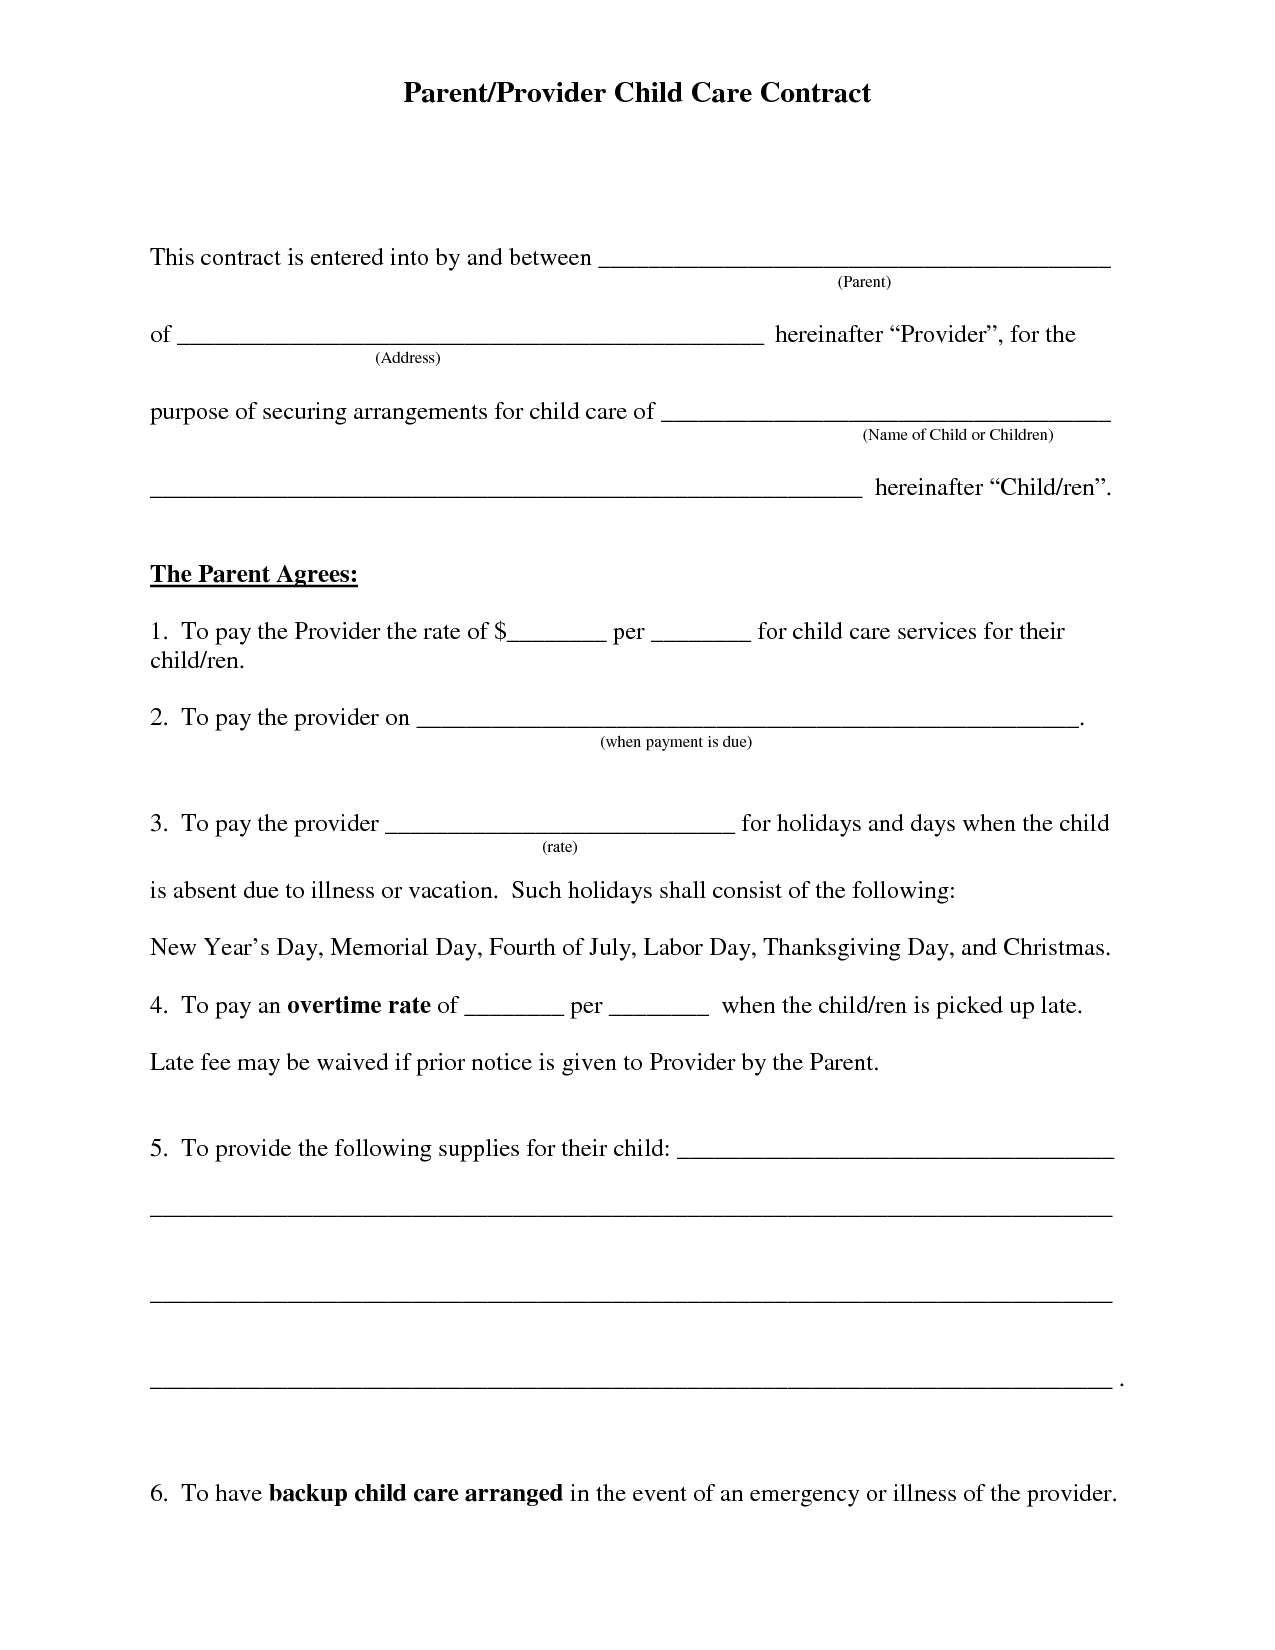 Free Daycare Contract Forms | Daycare Forms | Daycare Contract, Home - Free Printable Daycare Forms For Parents